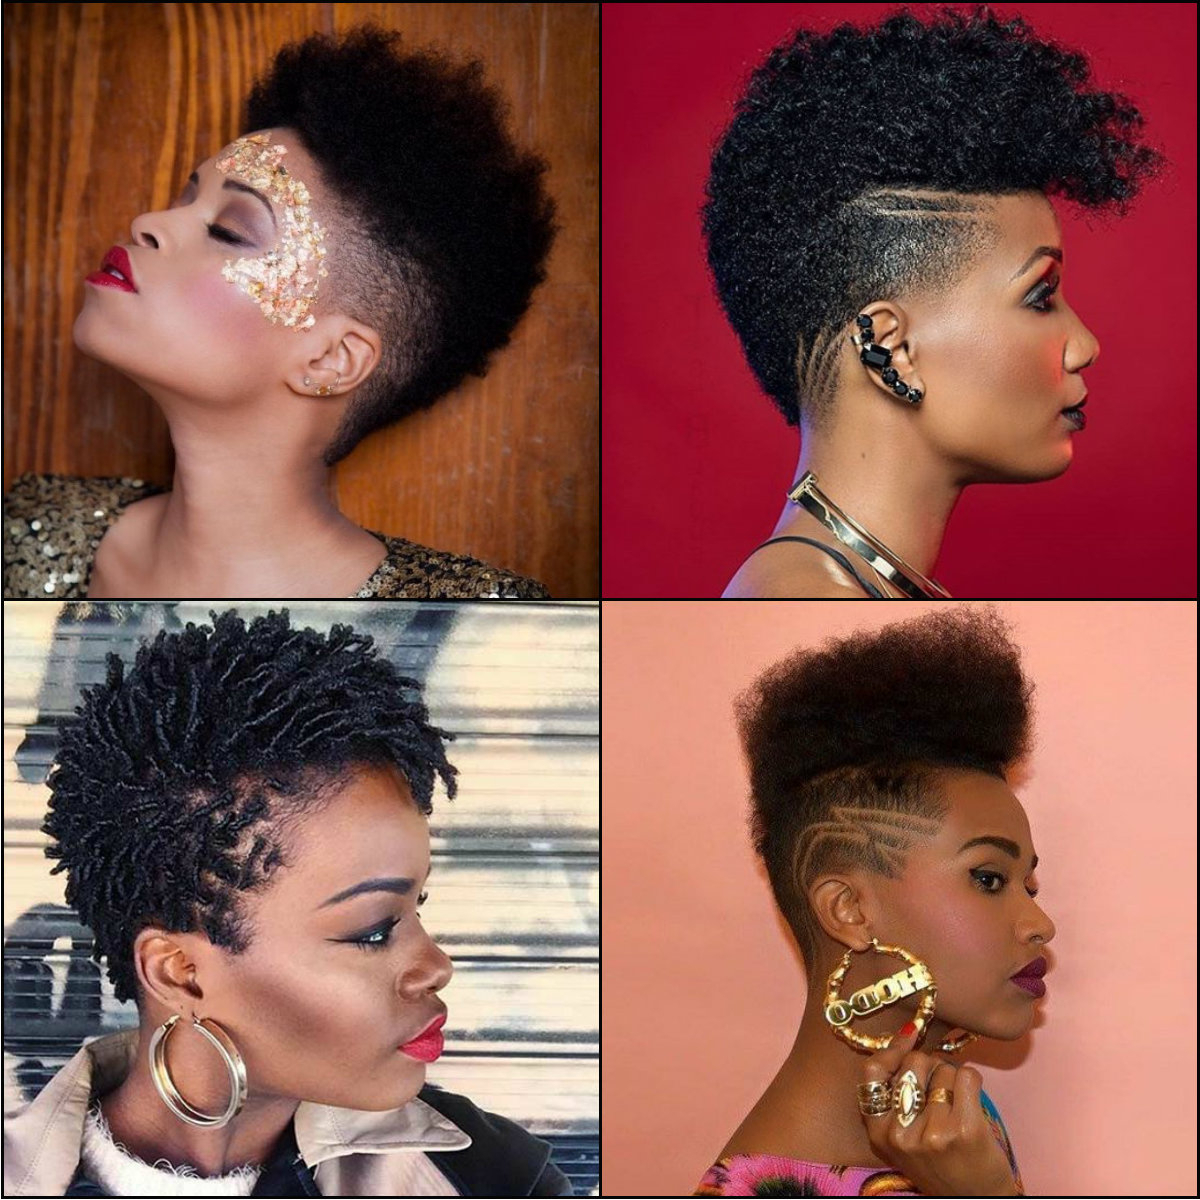 Black Women Fade Haircuts To Look Edgy And Sexy | Hairstyles 2017 With Regard To African Women Short Hairstyles (View 14 of 25)